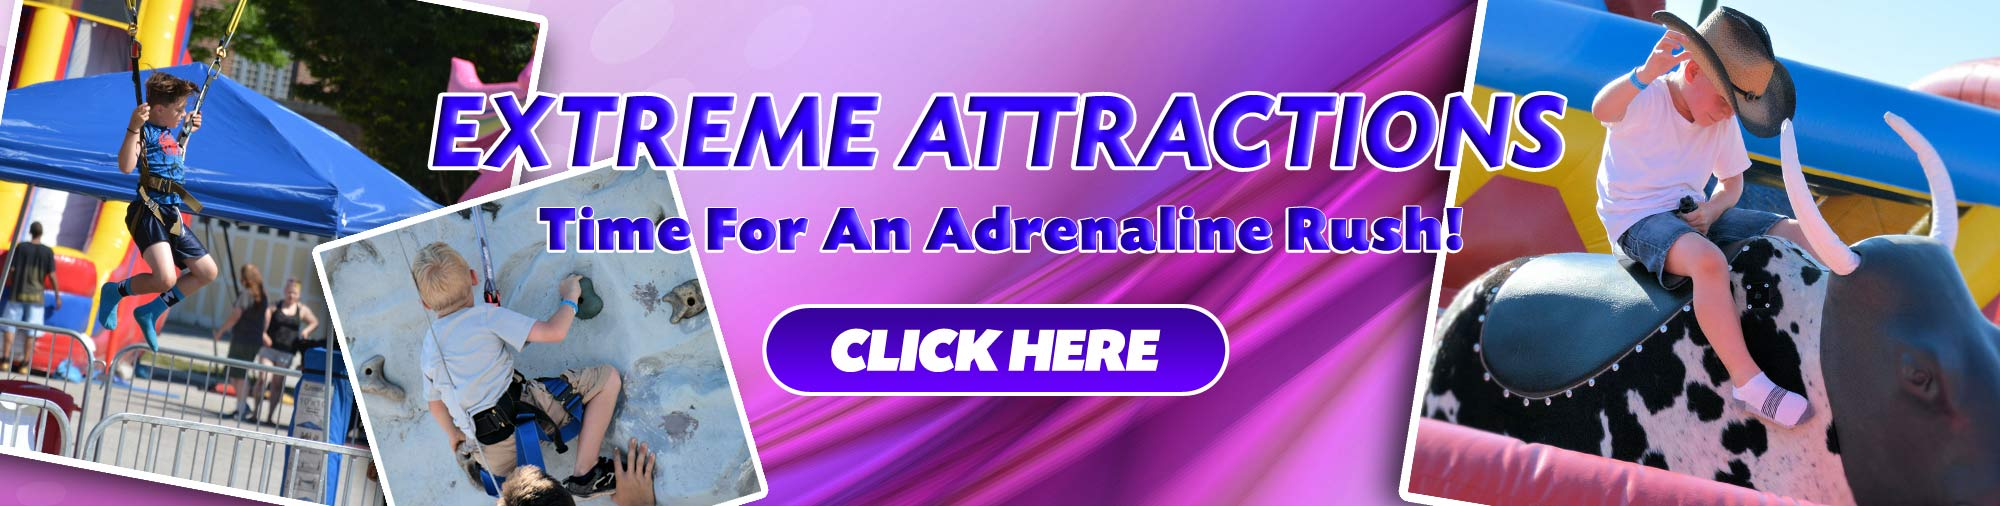 Extreme Attraction Rentals